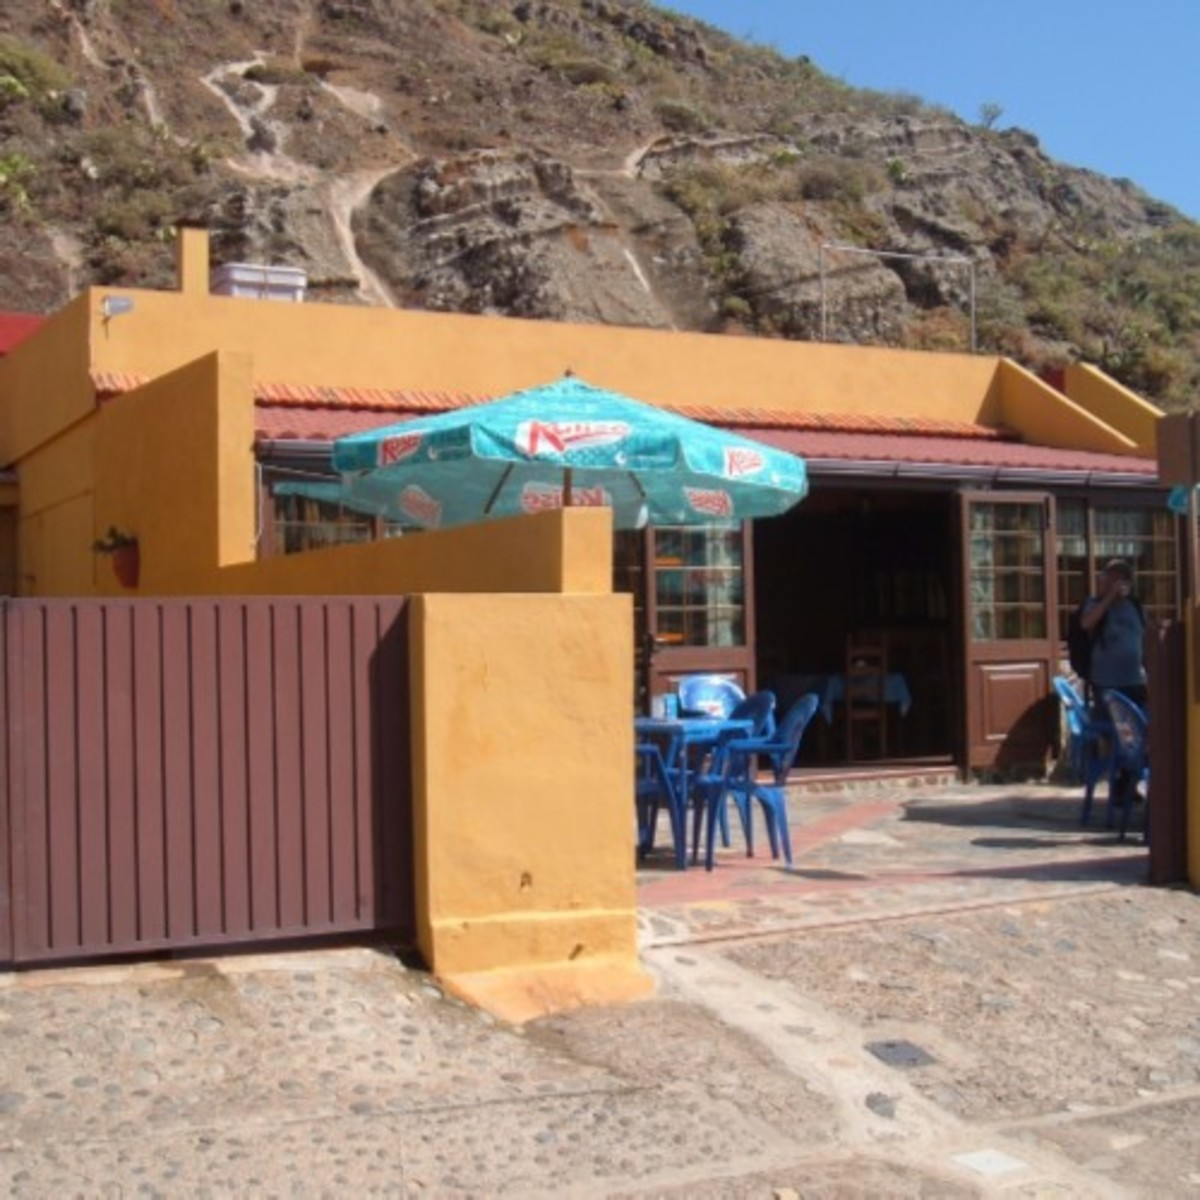 Chinamada's La Cueva bar and restaurant. Photo by Steve Andrews